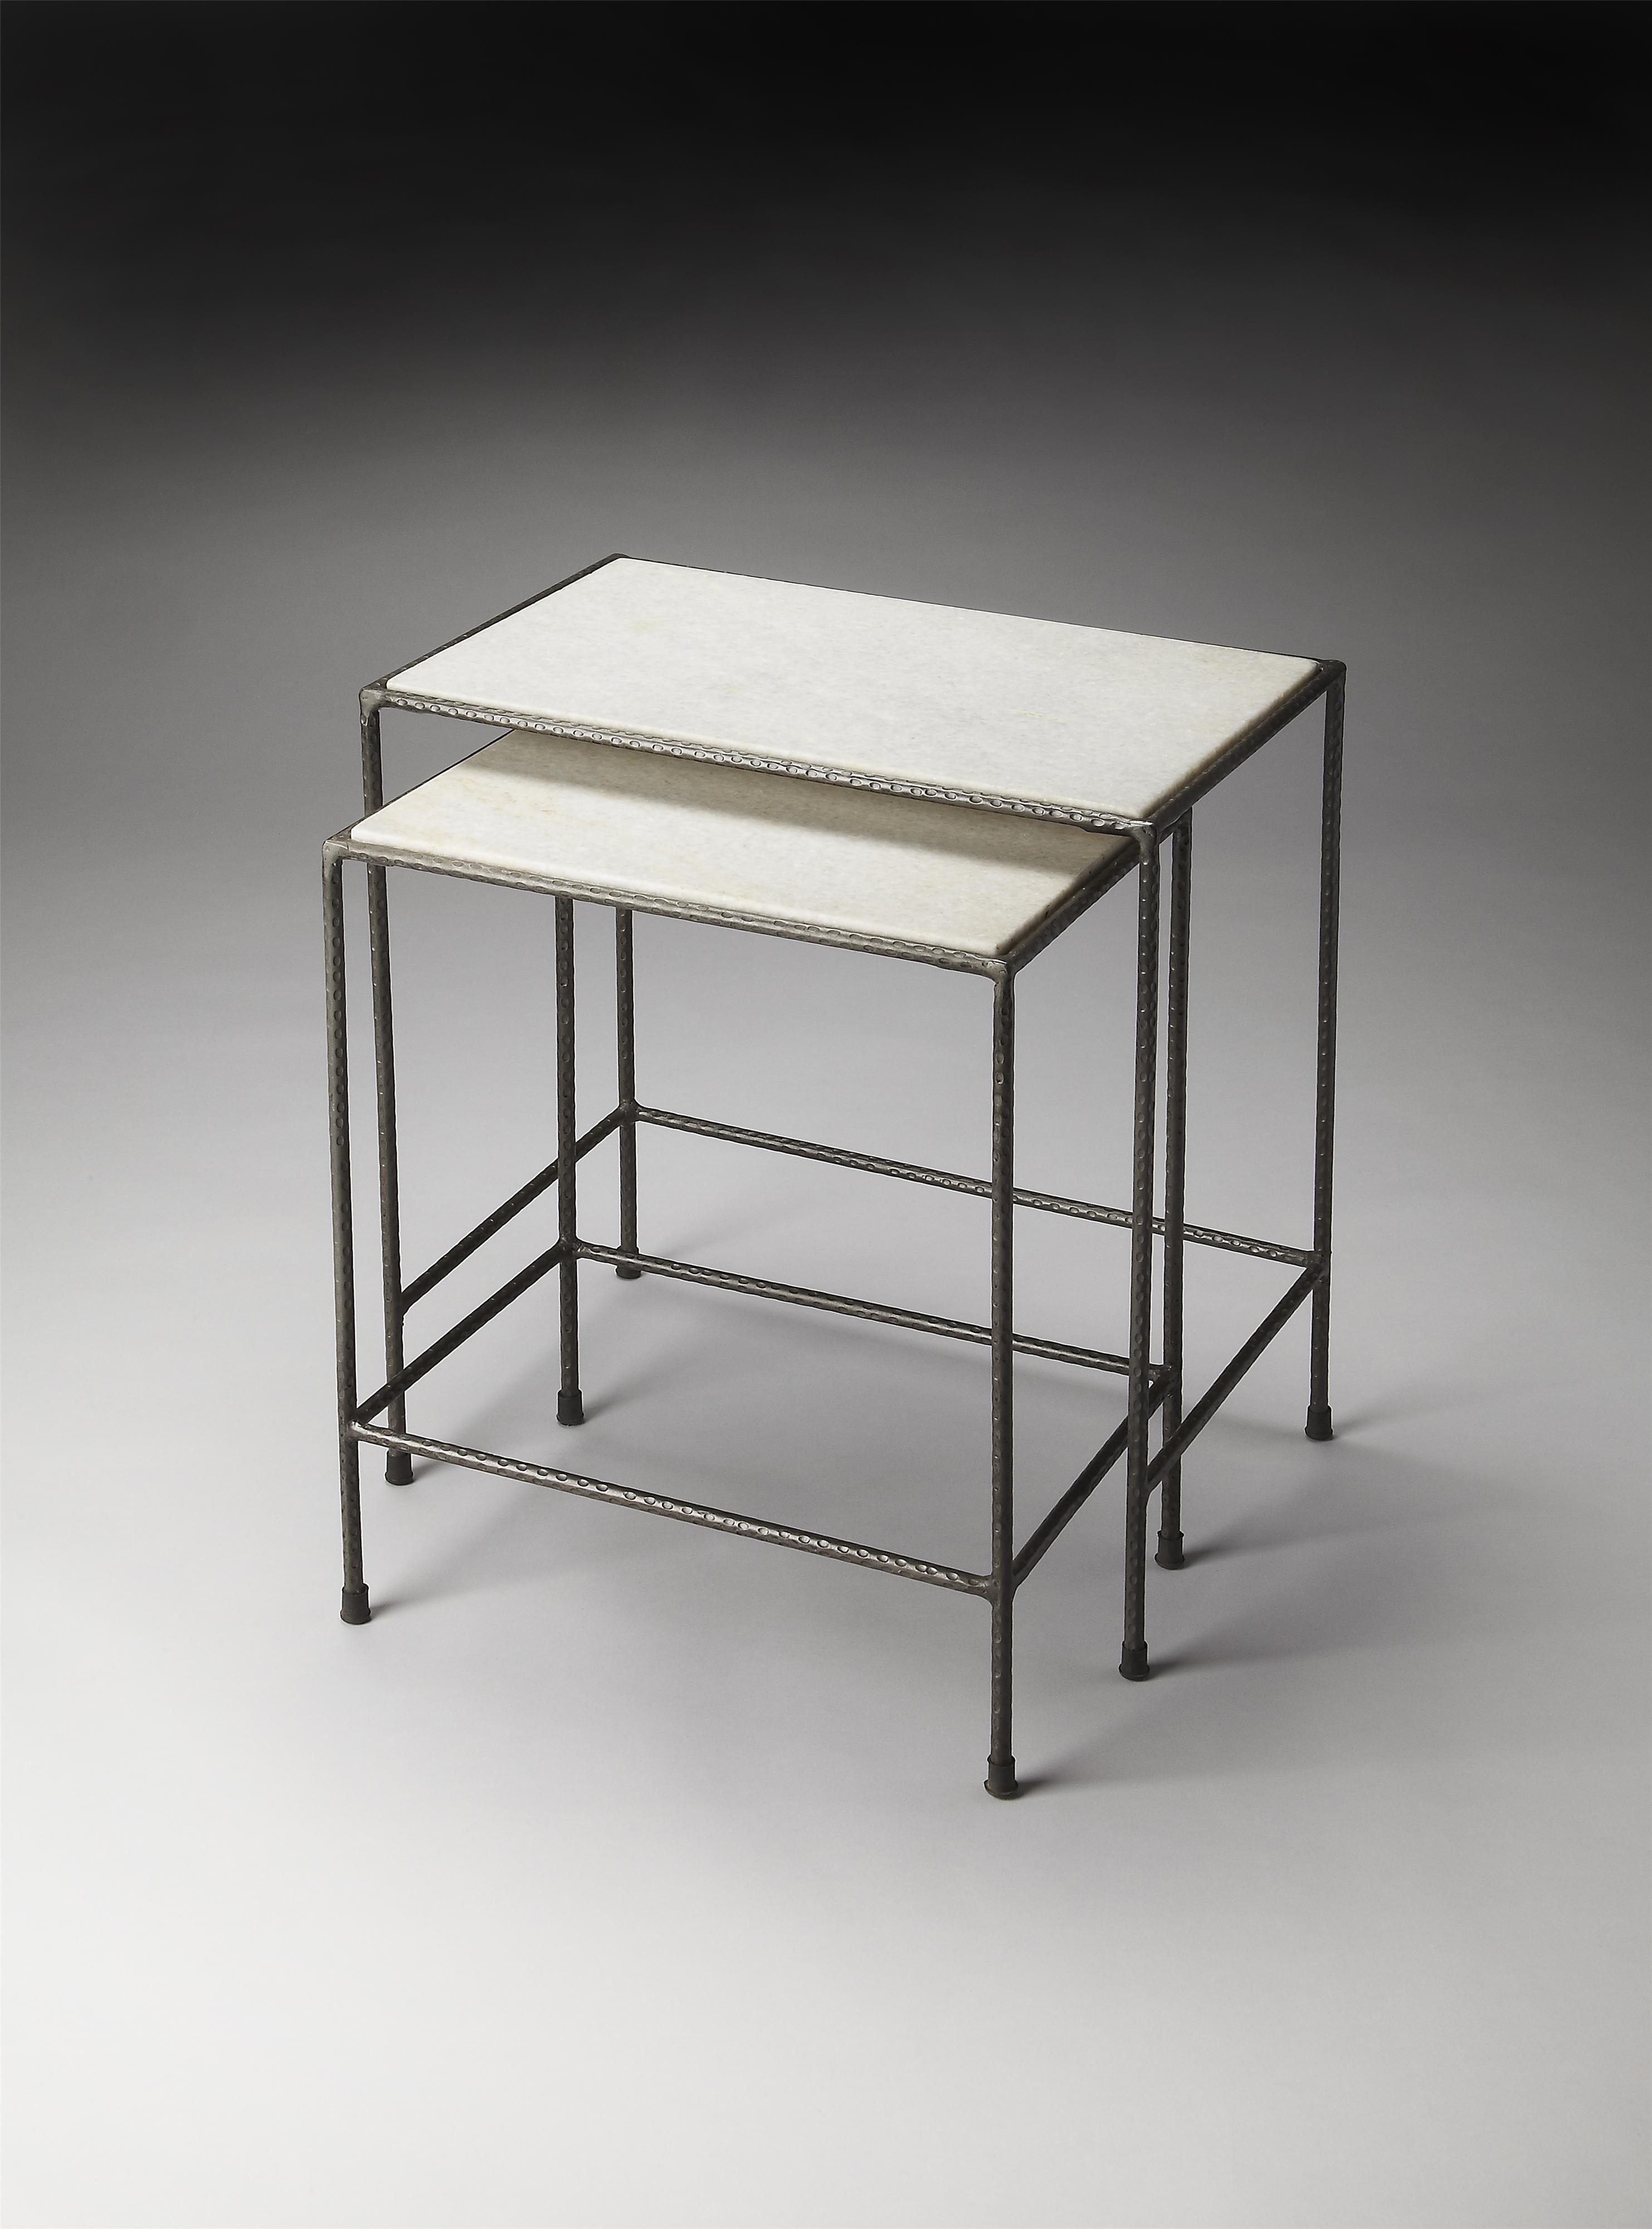 Butler Specialty Company Metalworks Nesting Tables - Item Number: 2870330